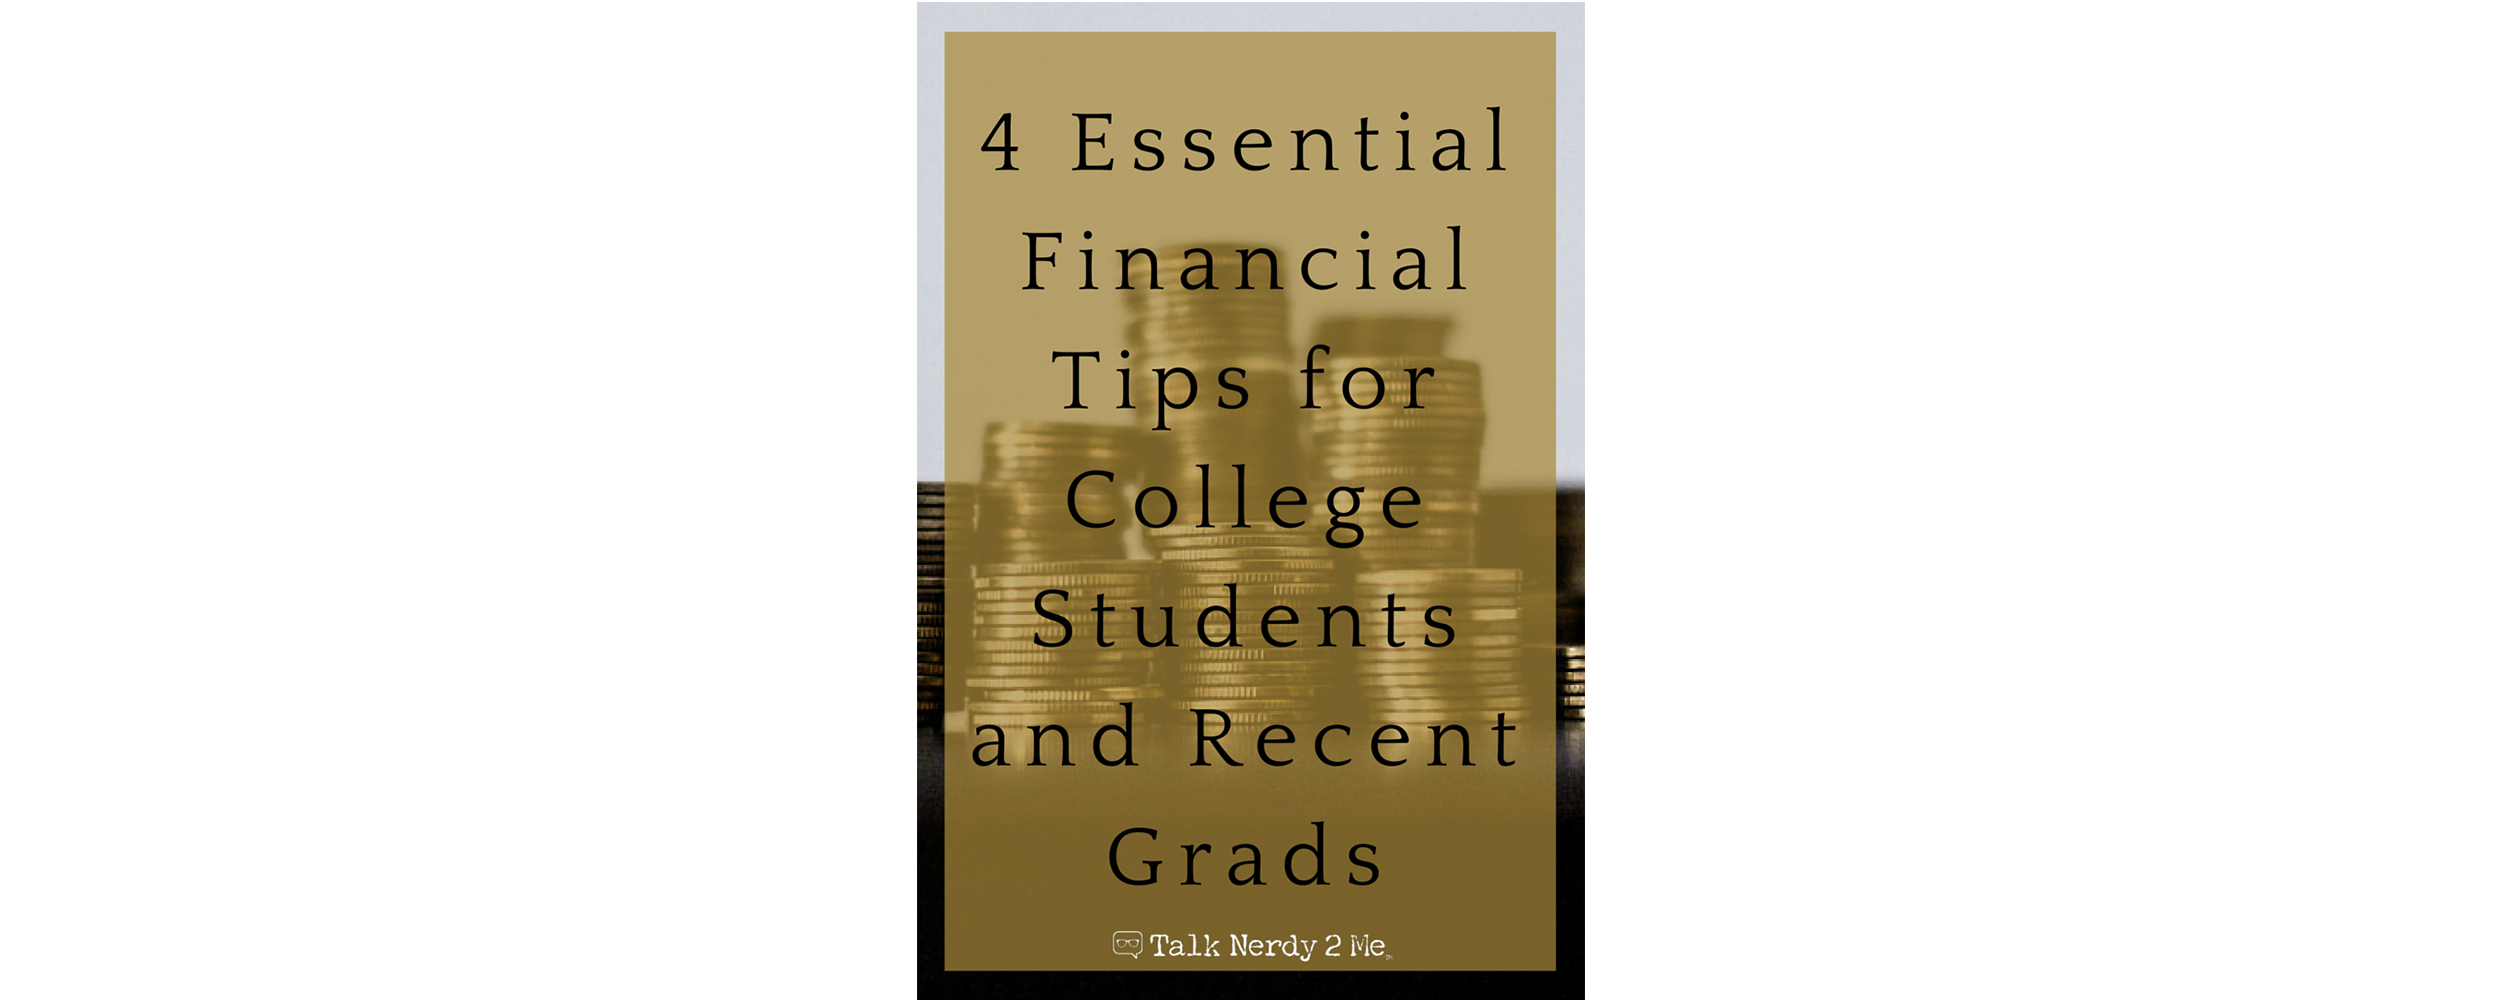 4 Essential Financial Tips for College Students and Recent Grads